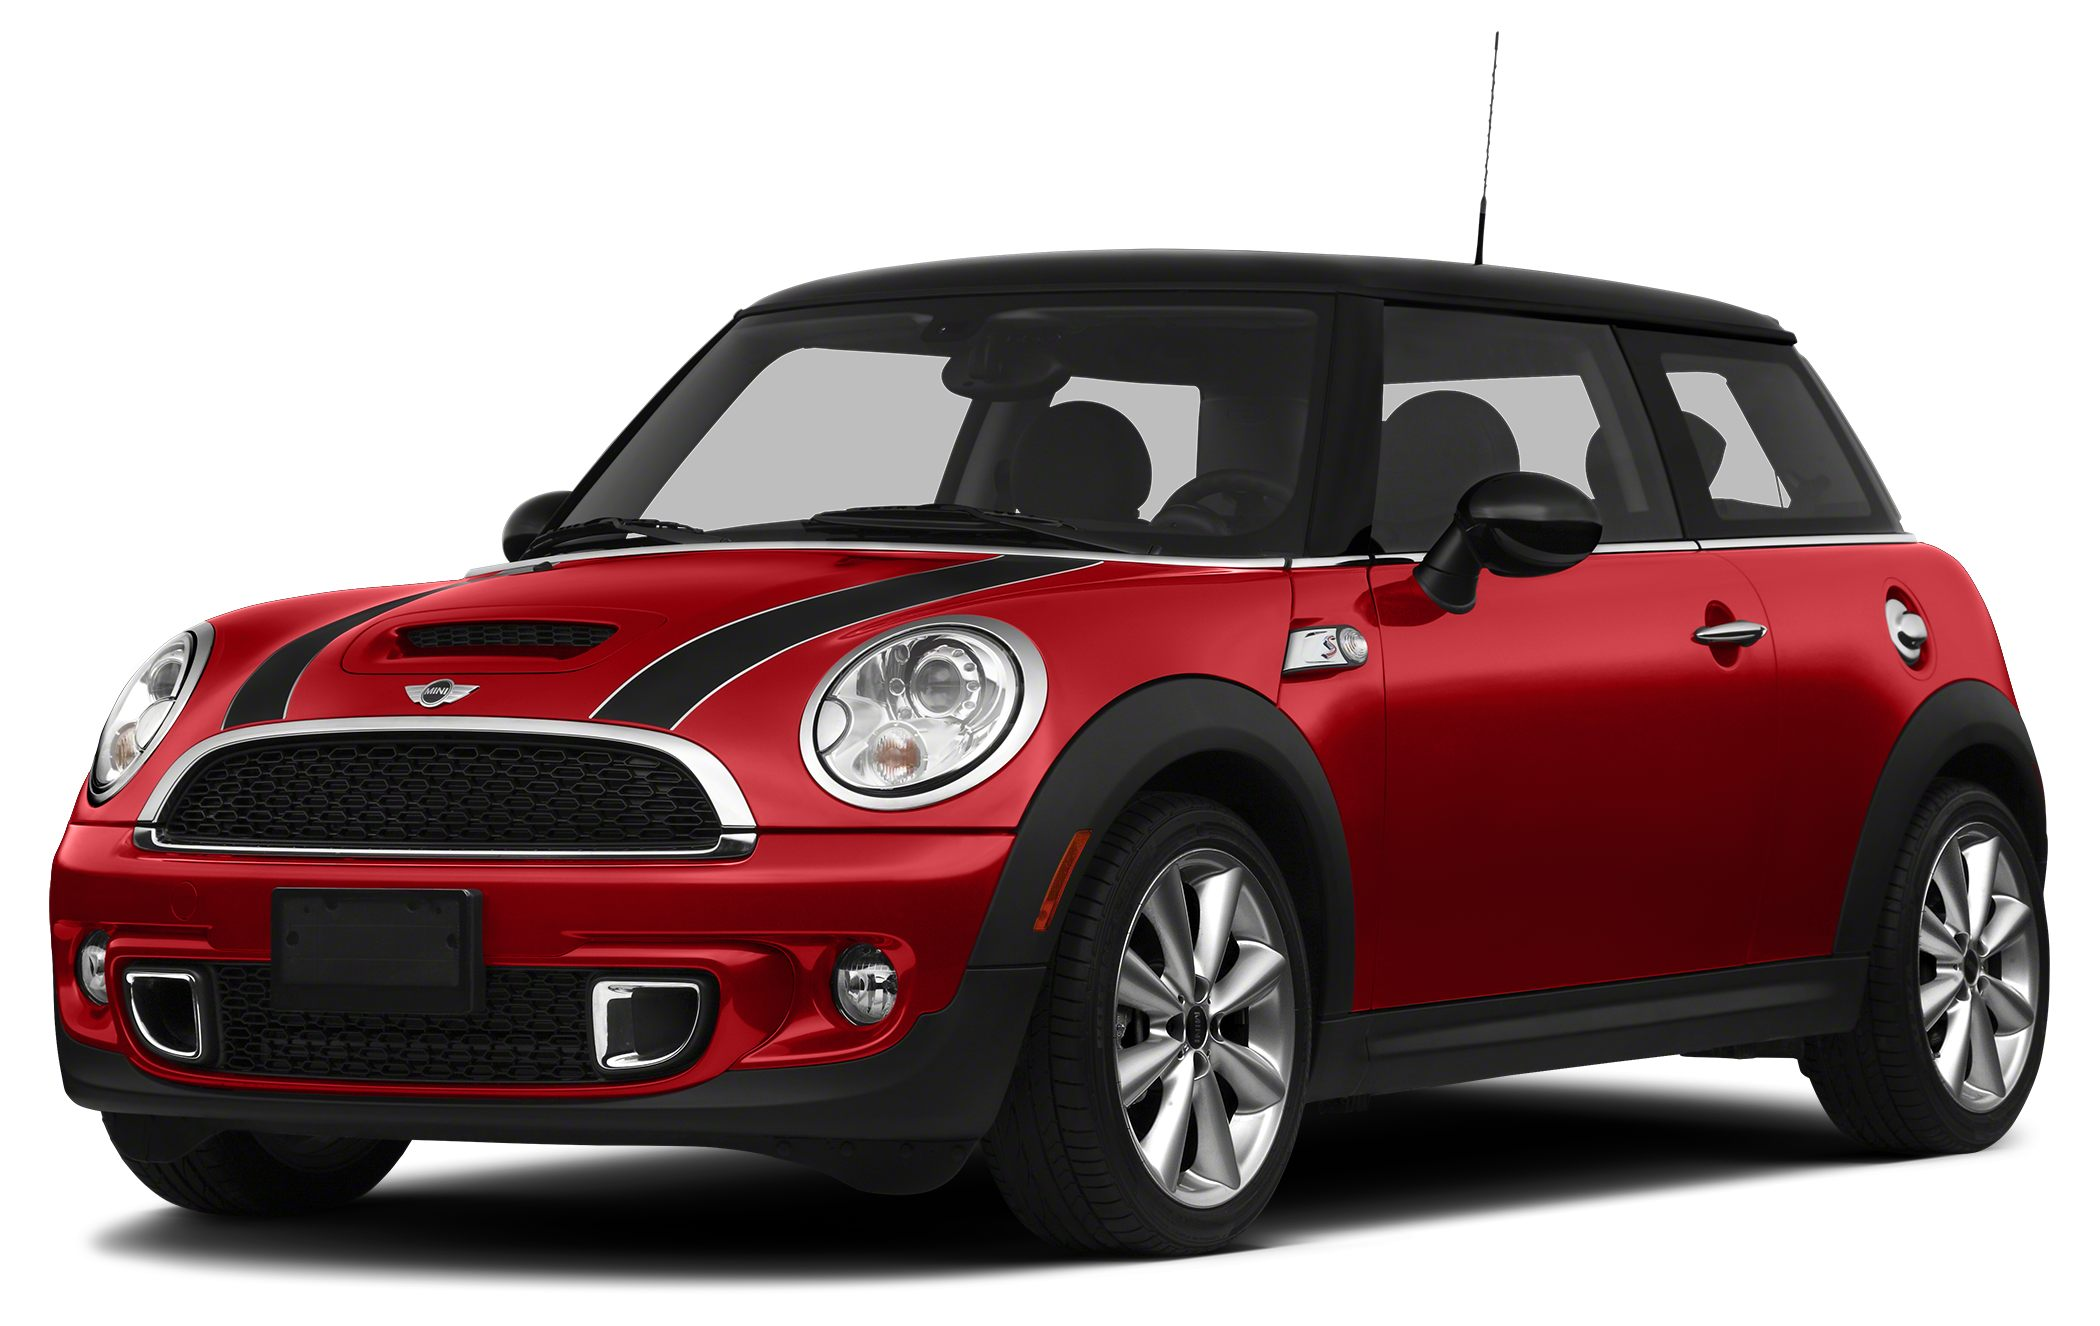 2013 MINI Cooper S Hardtop This MINI Cooper is one of the most exciting and stylish cars on the ma